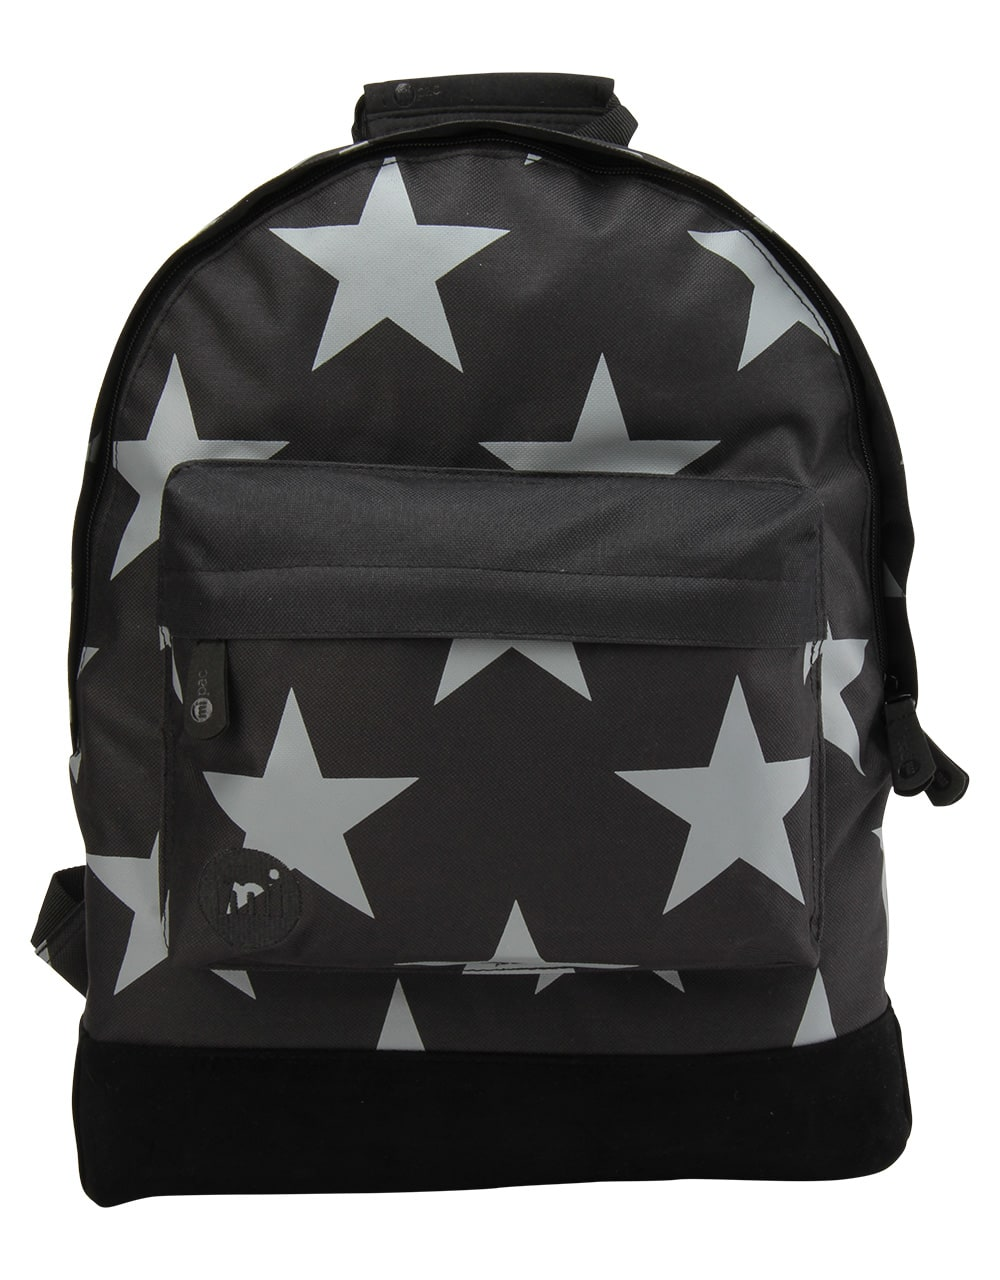 MiPac Stars XL Backpack  BlackGrey